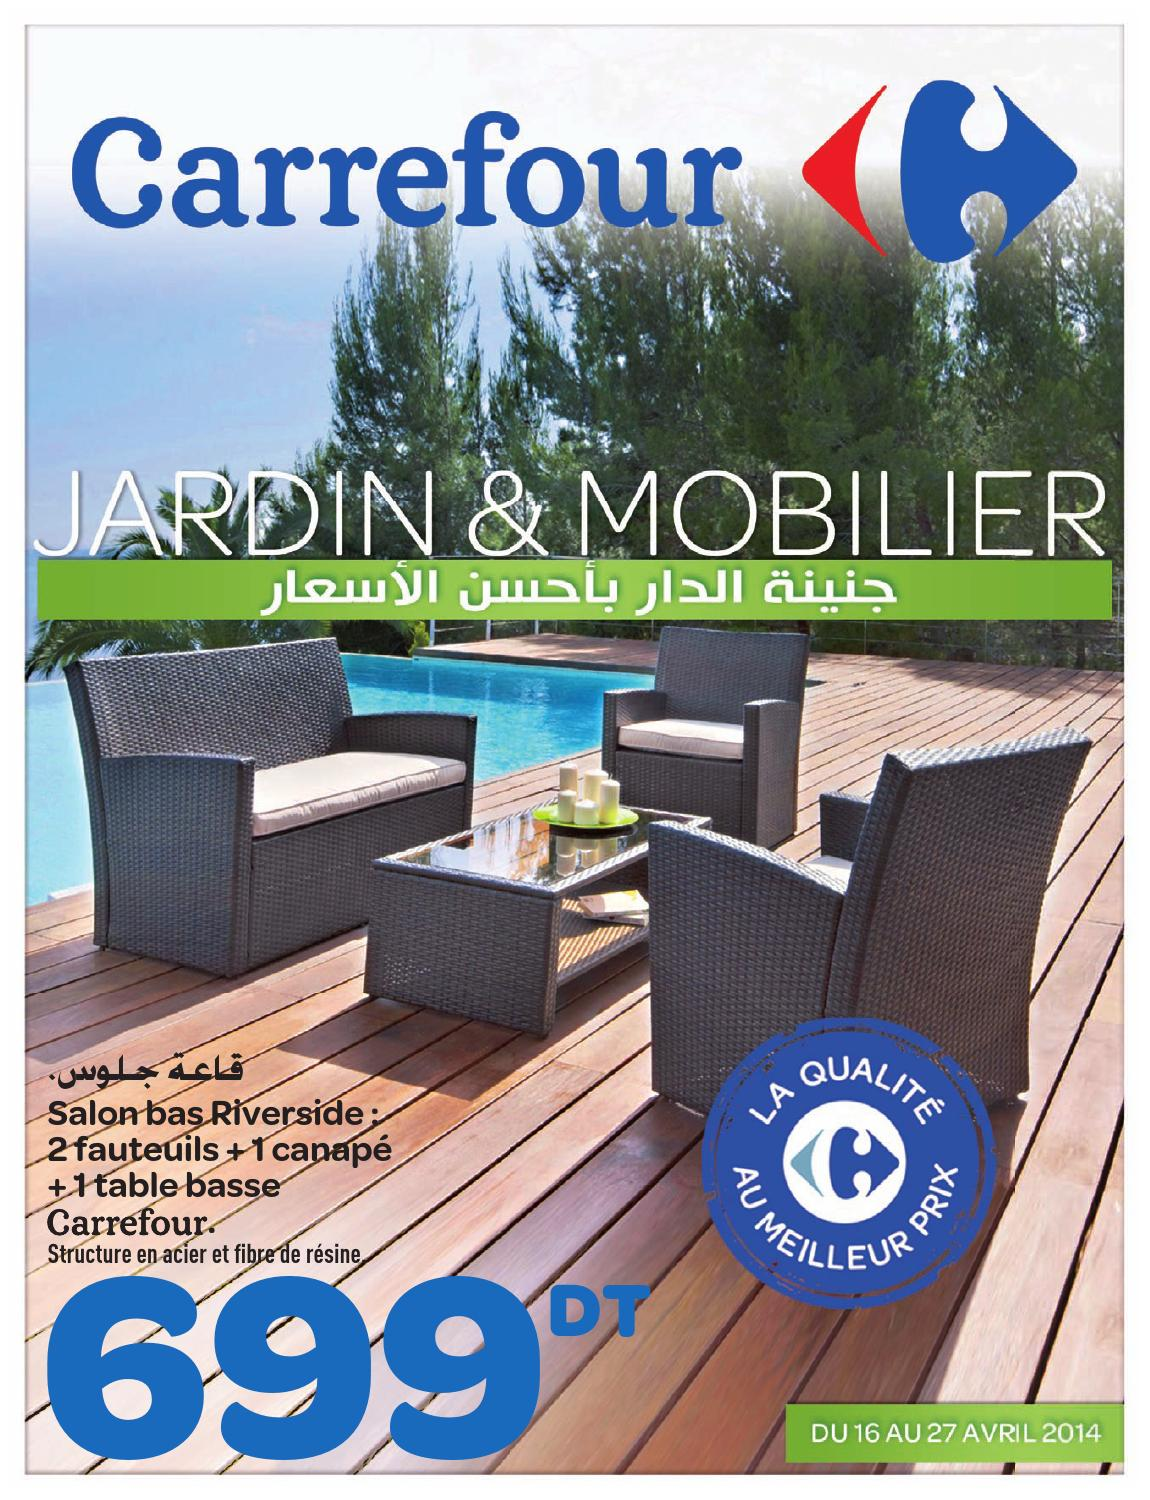 Catalogue carrefour jardin et mobilier by carrefour for Carrefour meuble salon